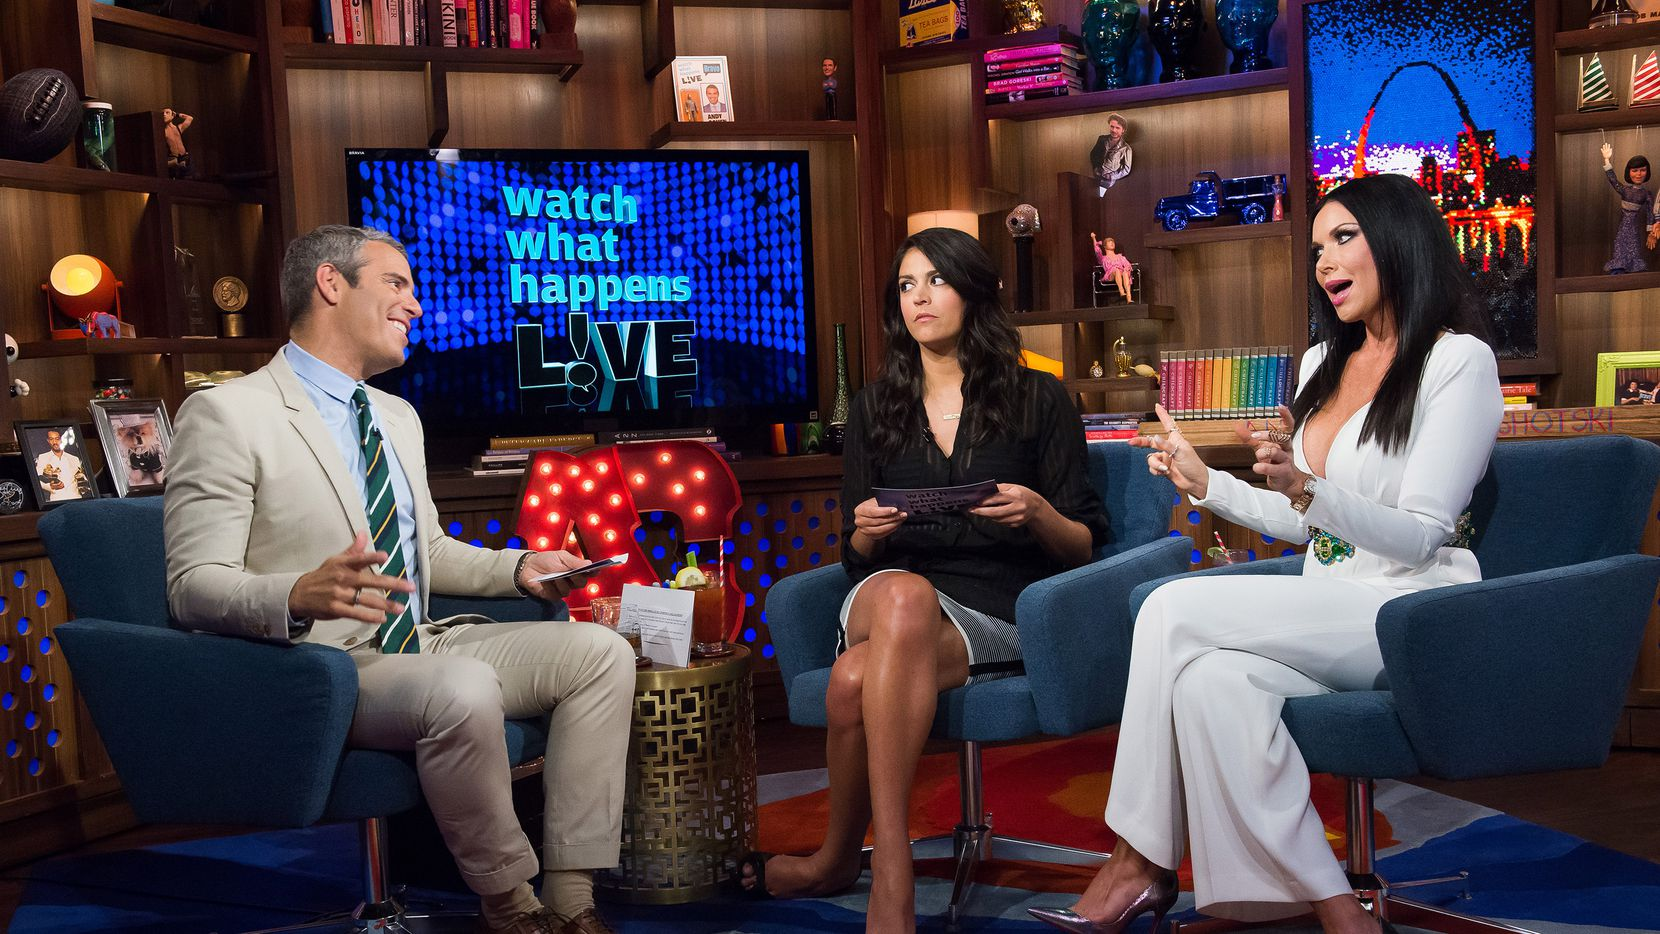 """Andy Cohen looks like he doesn't believe a thing anyone is saying on """"Watch What Happens Live"""" on Monday night. Cecily Strong of """"Saturday Night Live"""" and LeeAnne Locken of """"The Real Housewives of Dallas"""" were guests."""